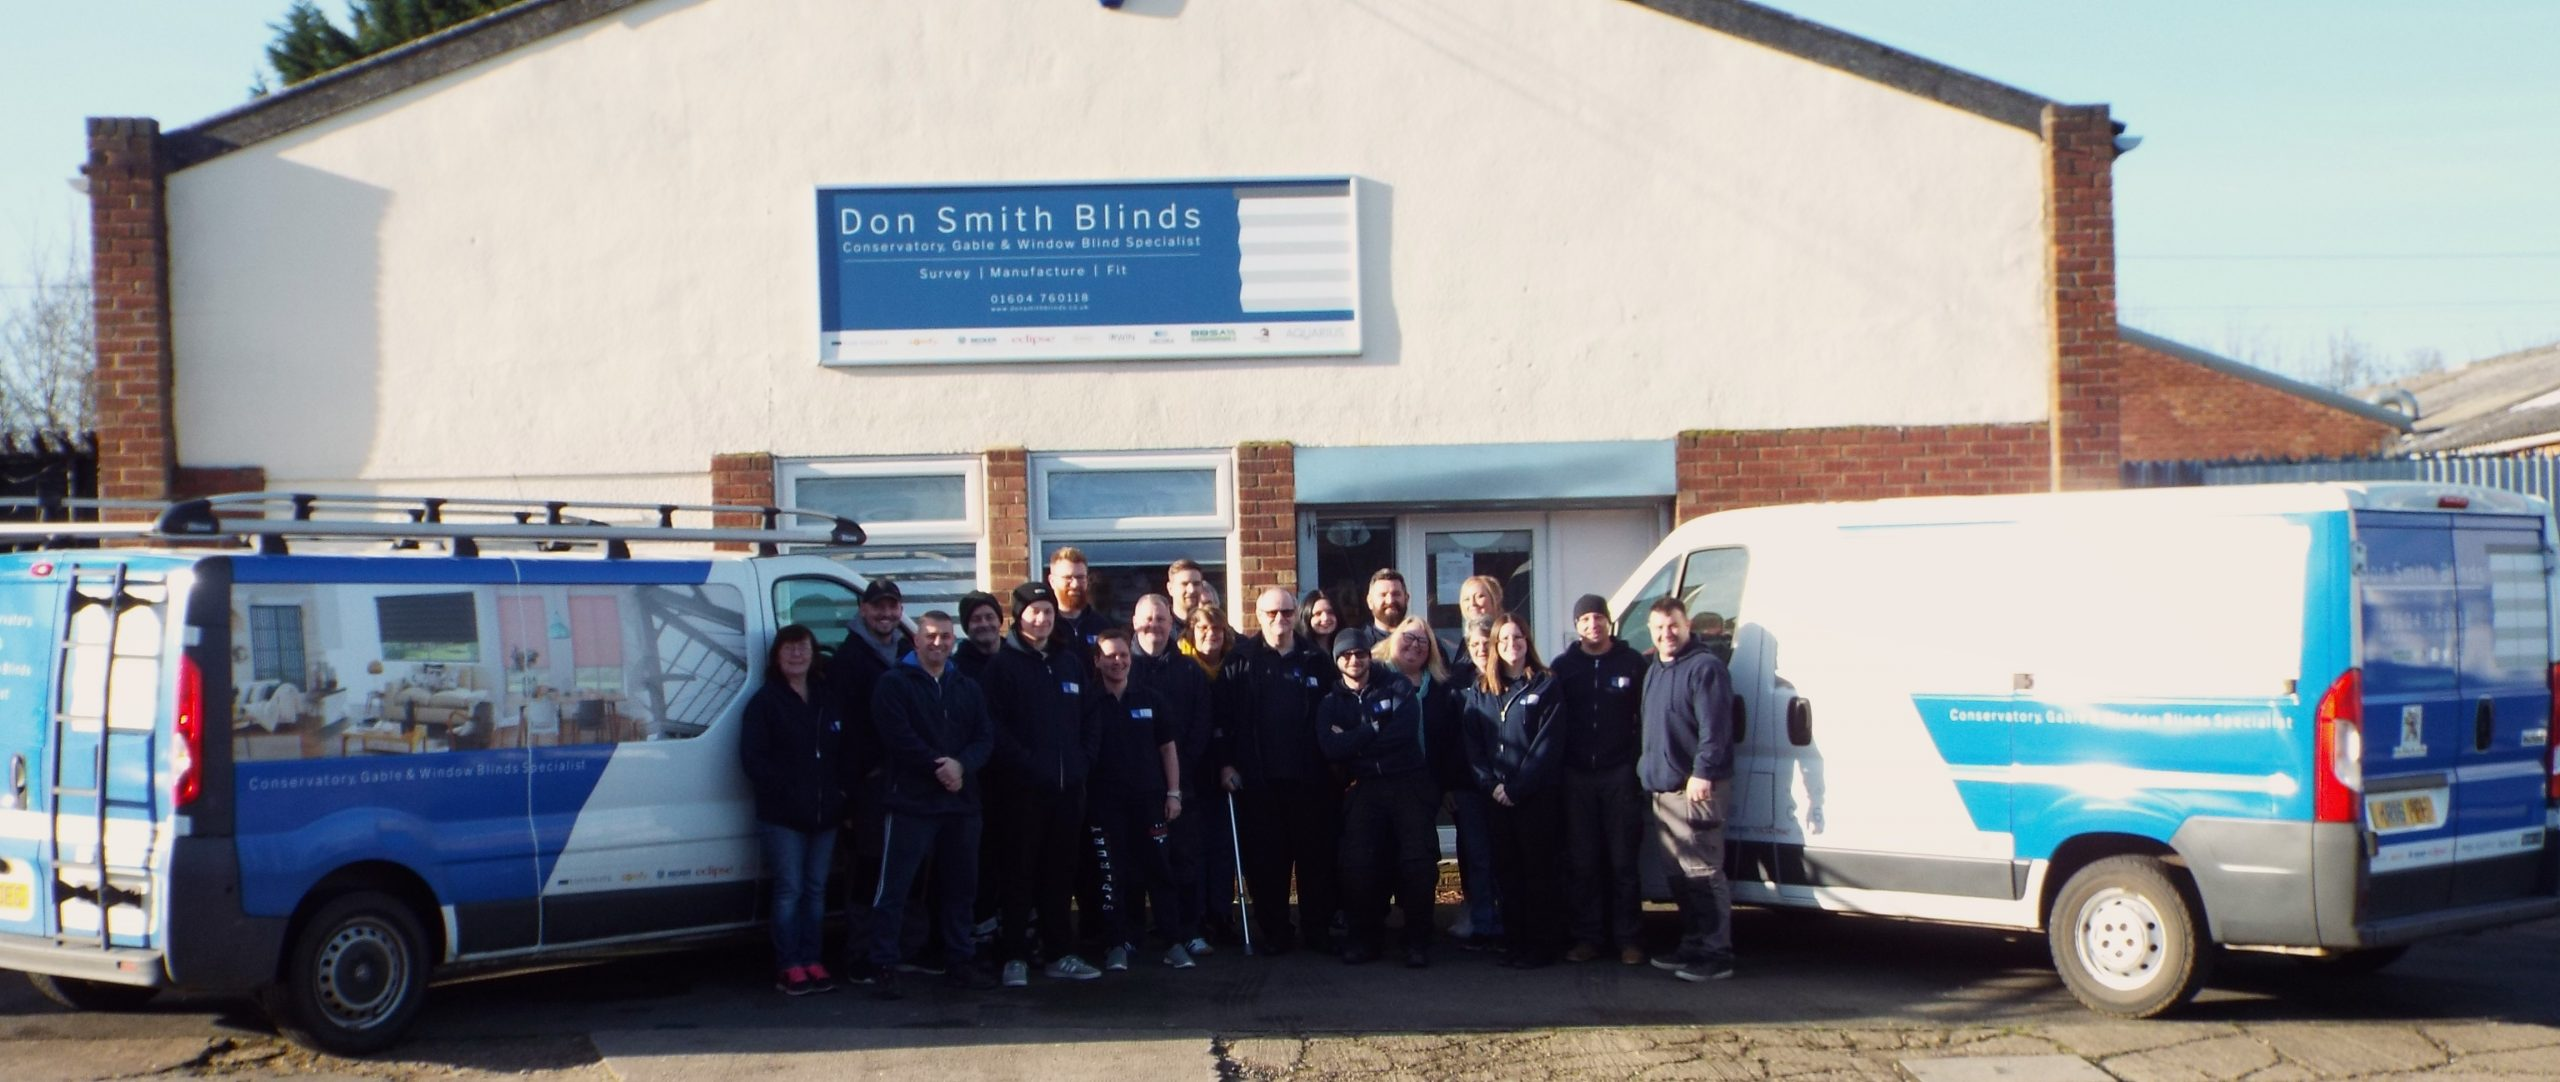 Don Smith Blinds workers